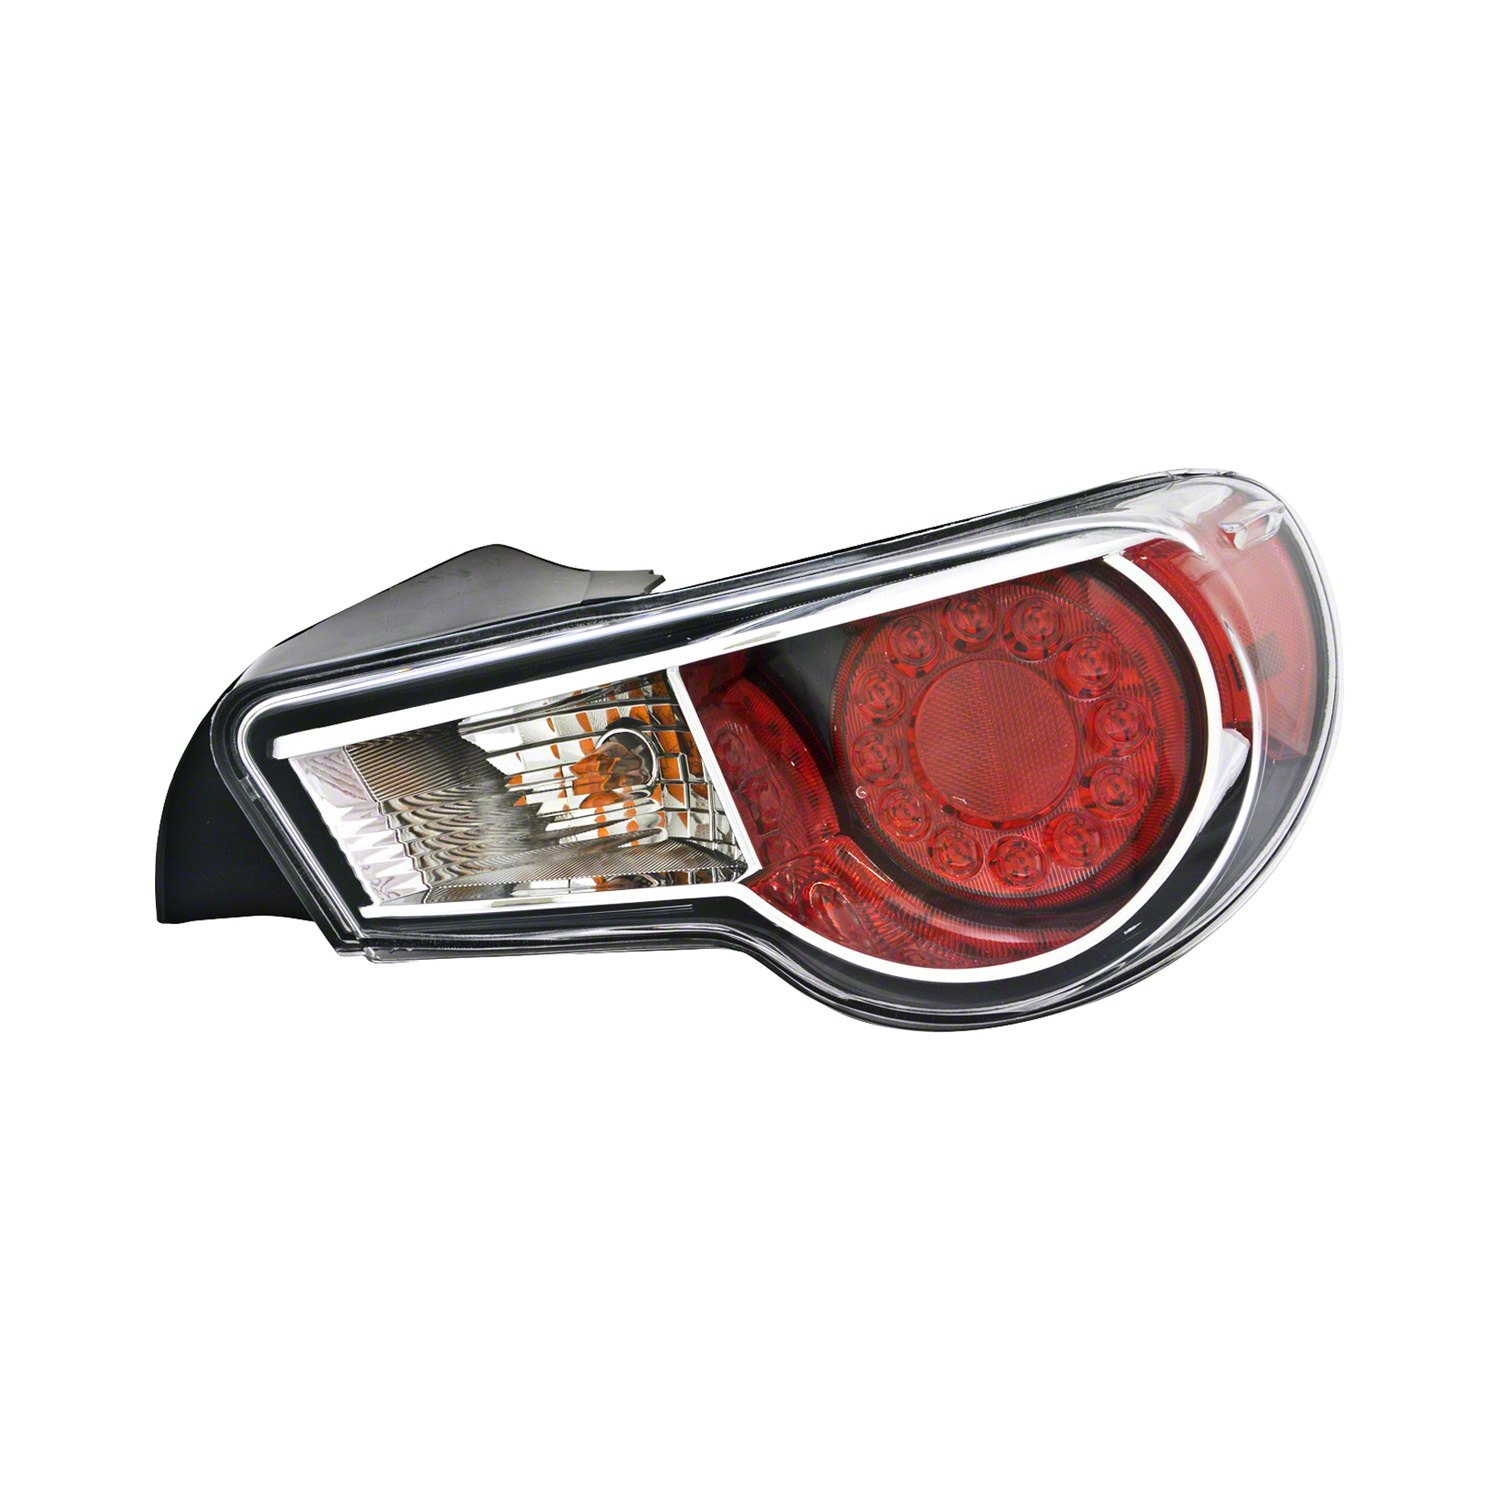 Tail Light Lens Replacement : Replace sc c passenger side replacement tail